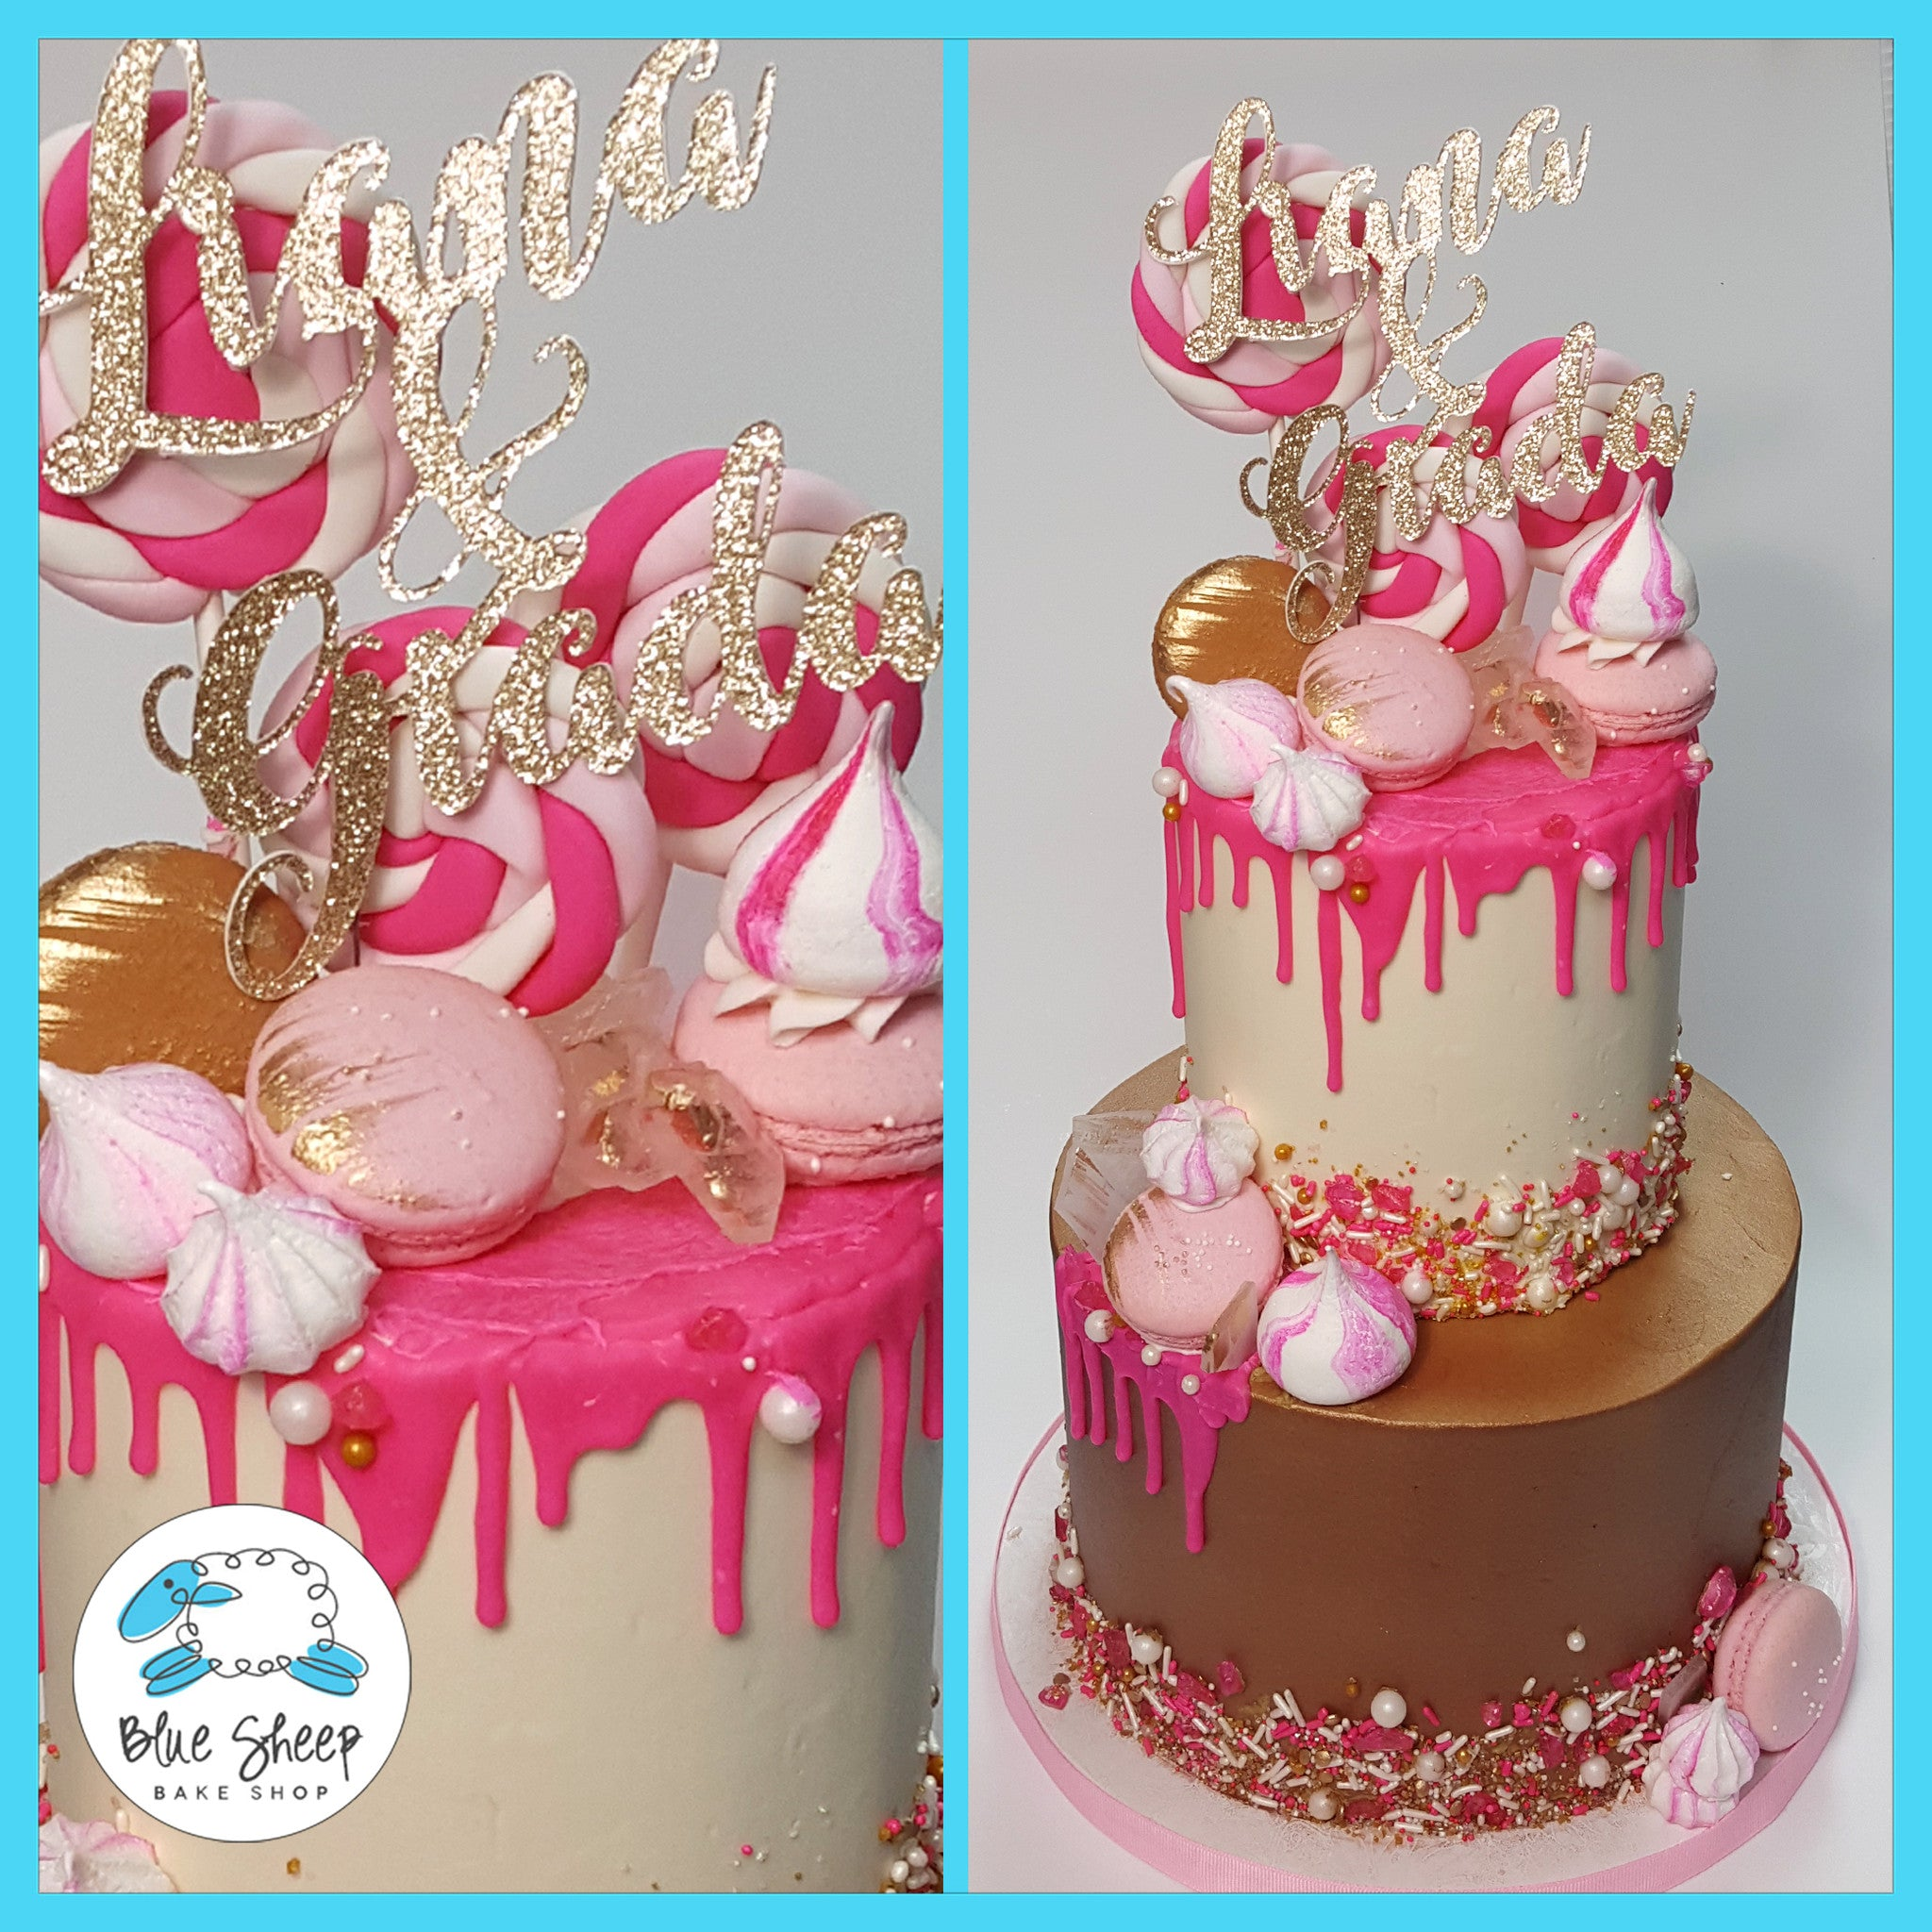 Liana Giada S Pink Chocolate And Gold Drip Birthday Cake Nj